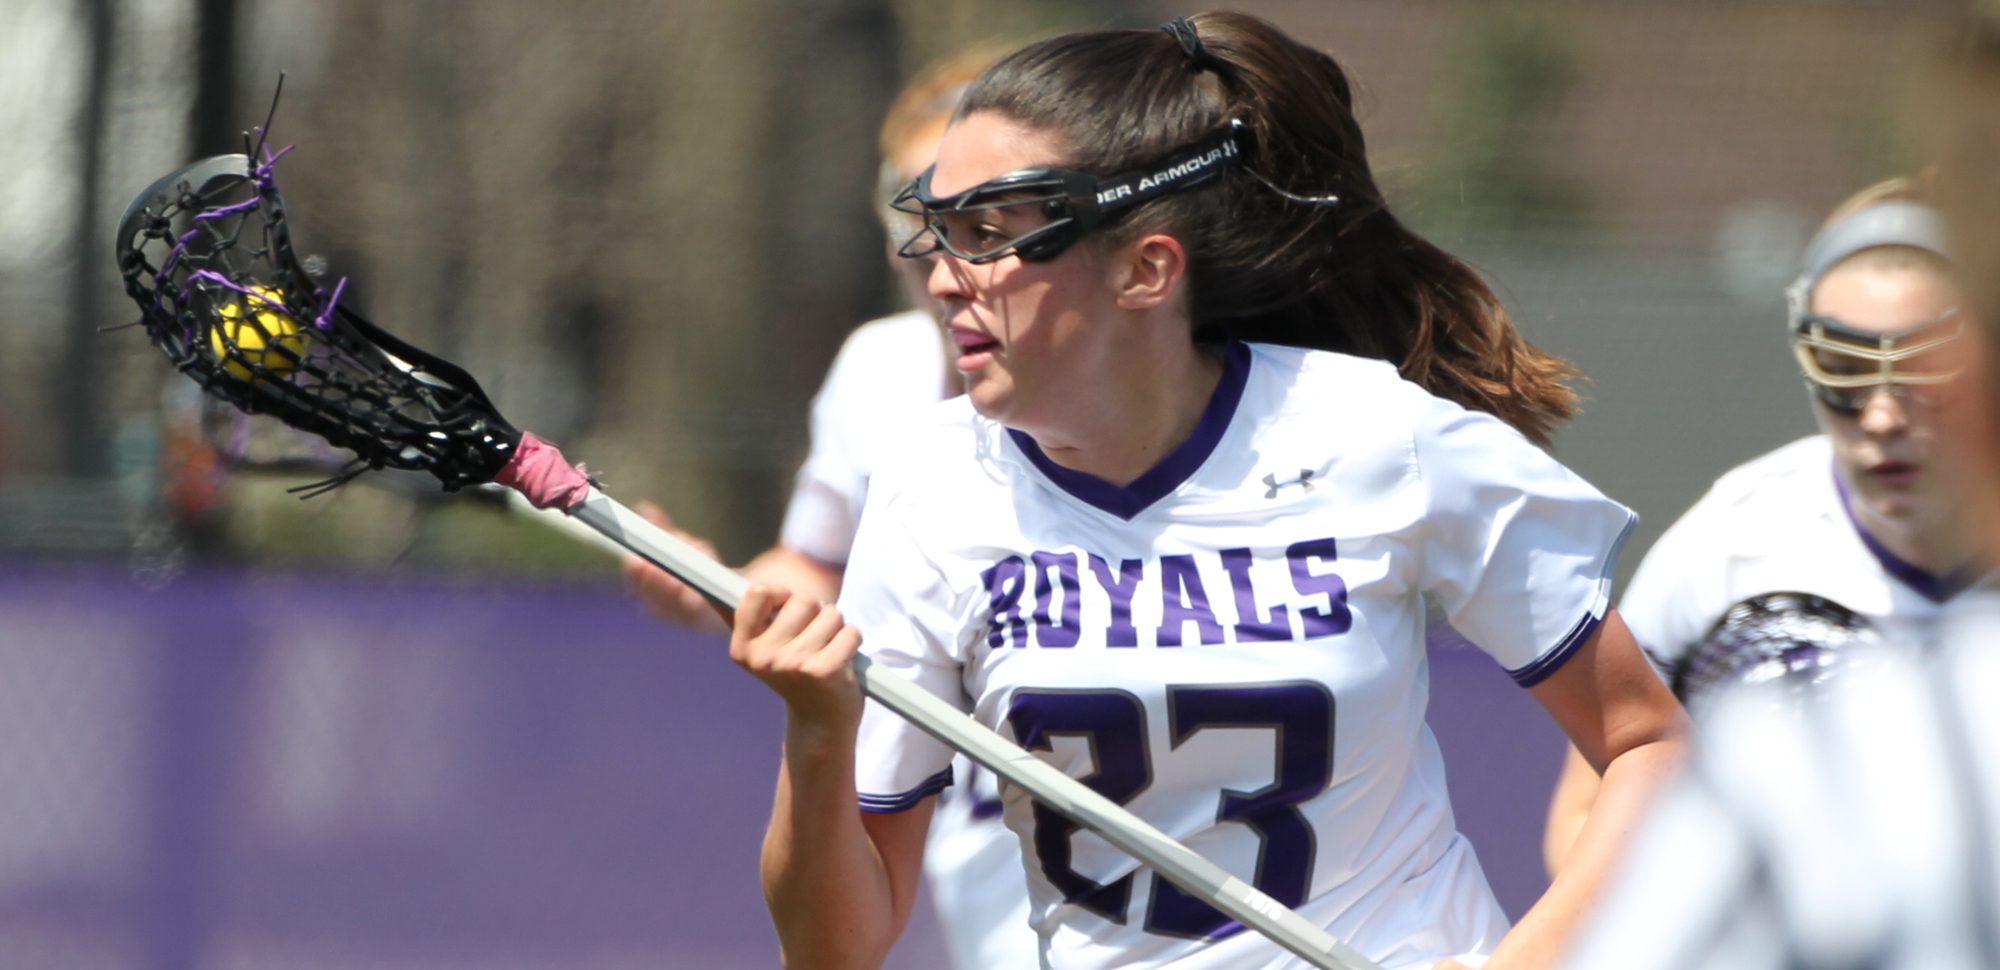 Senior Kate Calabro of The University of Scranton women's lacrosse team was named Landmark Conference Athlete of the Week along with seven other senior women's lacrosse players from around the conference.